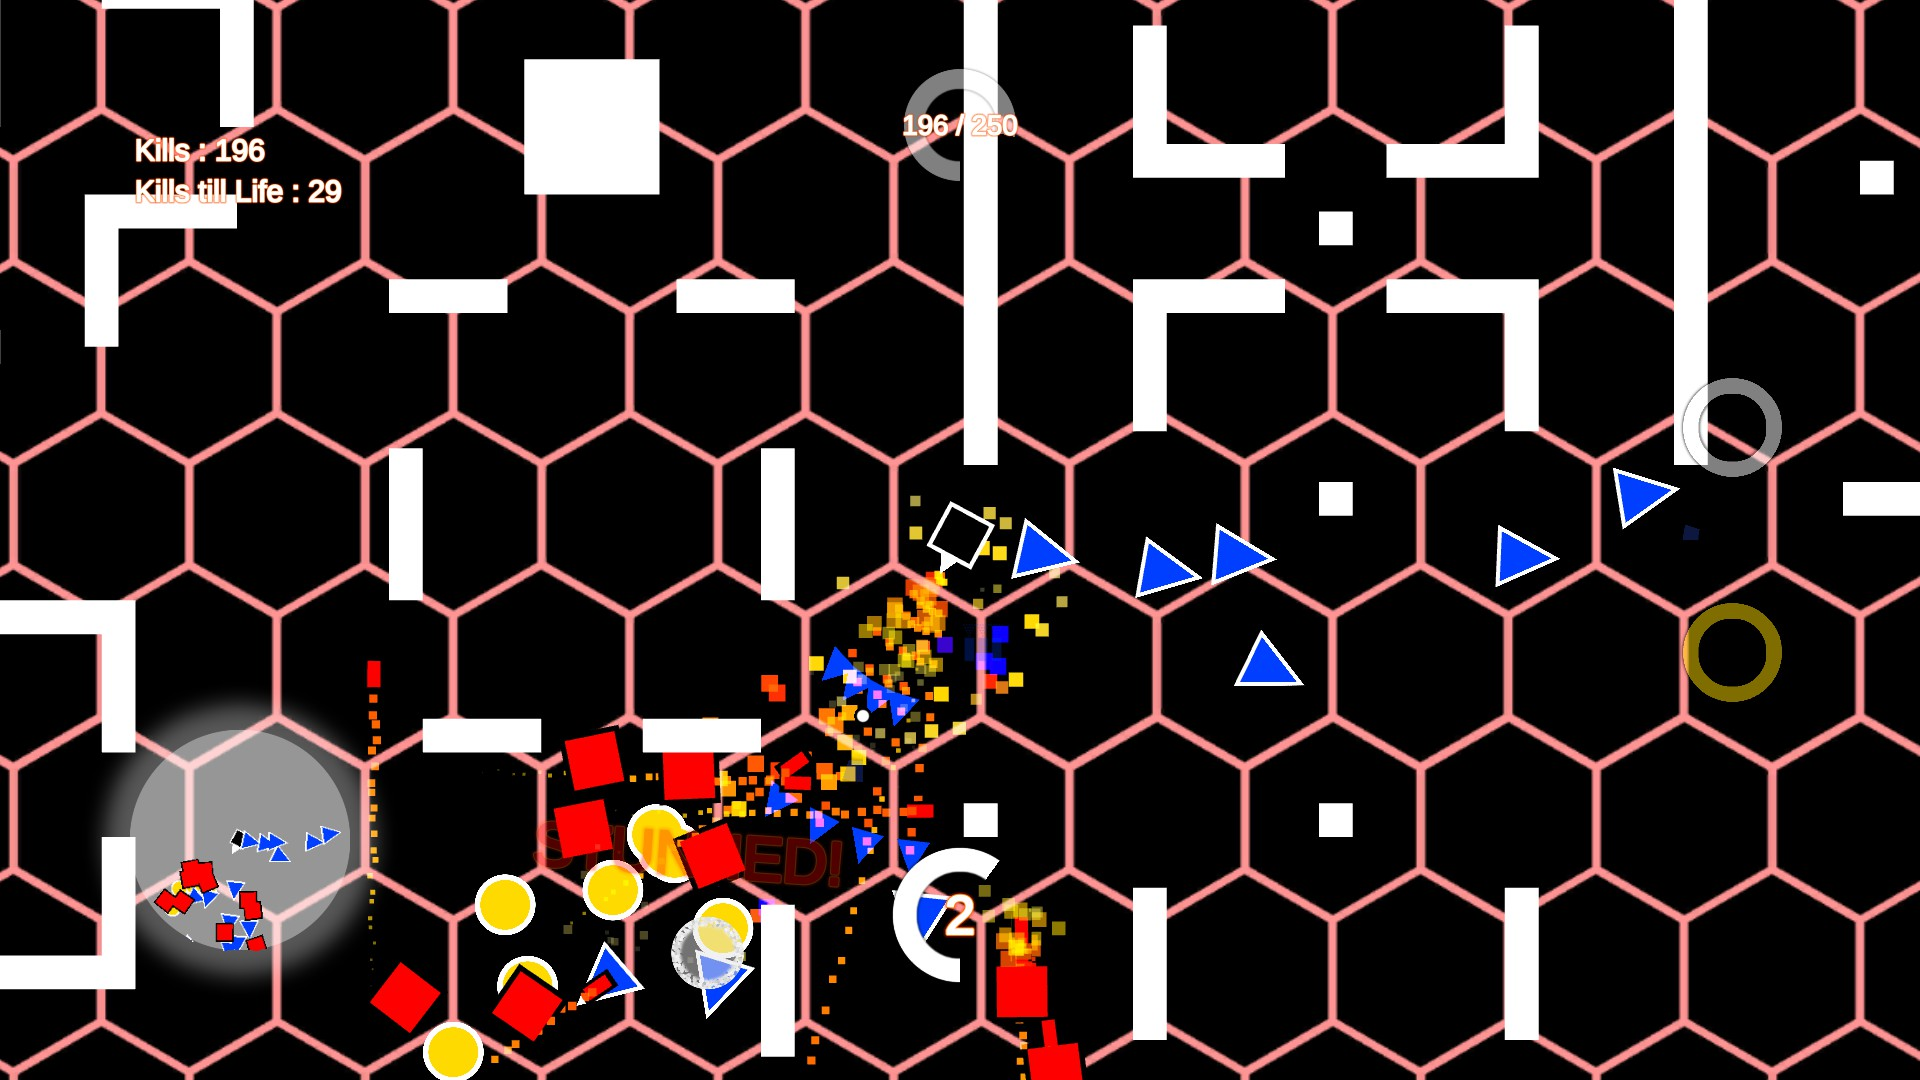 Its simple, shoot gameplay. Shows a black and white where the black and white square at the center is using a blue shotgun to fend off red squares, yellow circles, and blue triangles. One of the red enemies has been stunned.